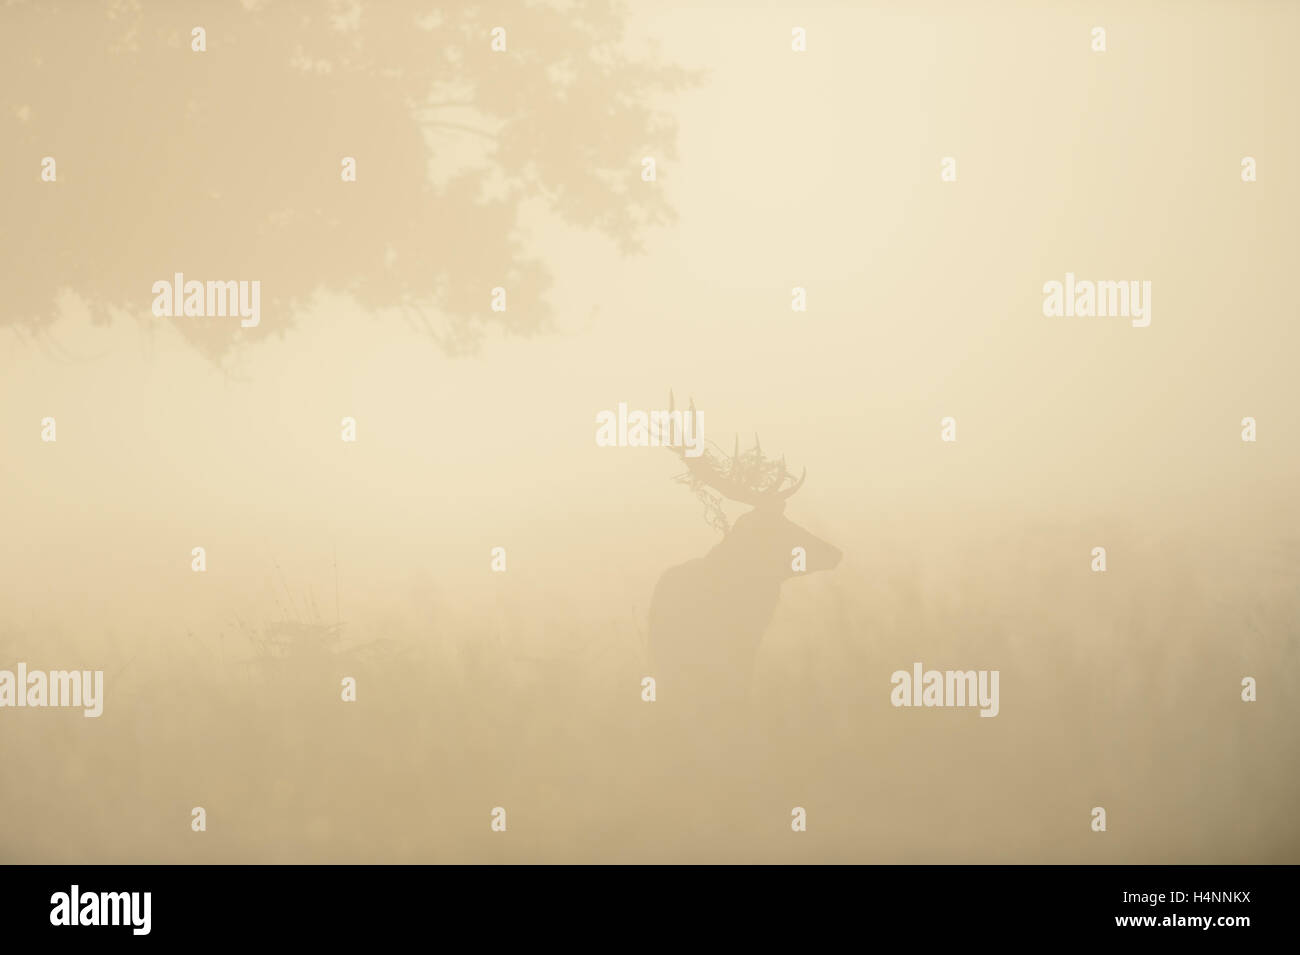 Vague silhouette of a red deer stag in the reddish mist, backlit by sunrise. Richmond Park, London, UK. - Stock Image